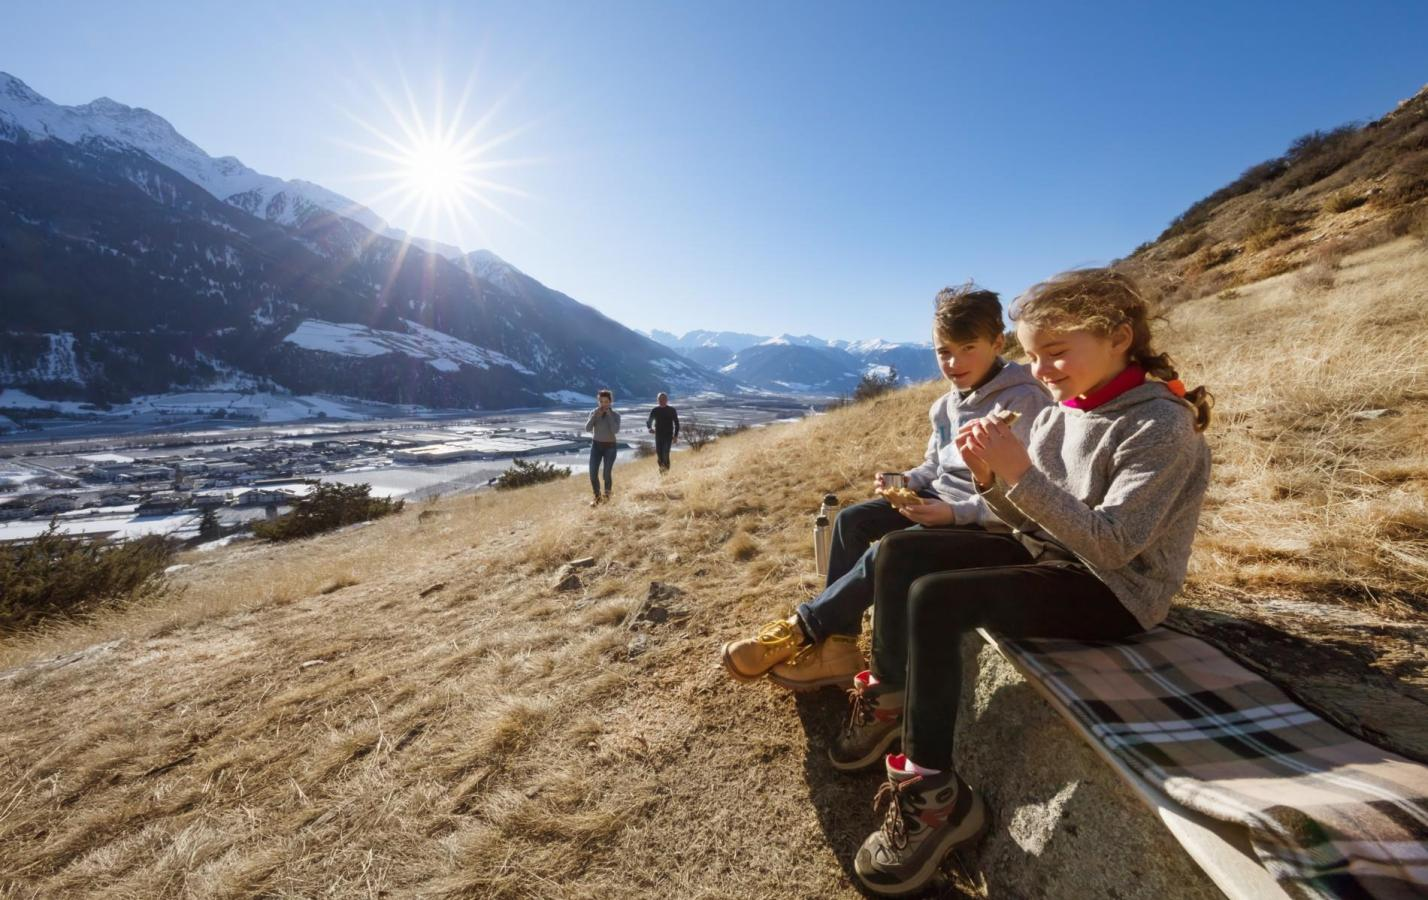 landschaft-winter-familie-sonnenberg-idm-fb